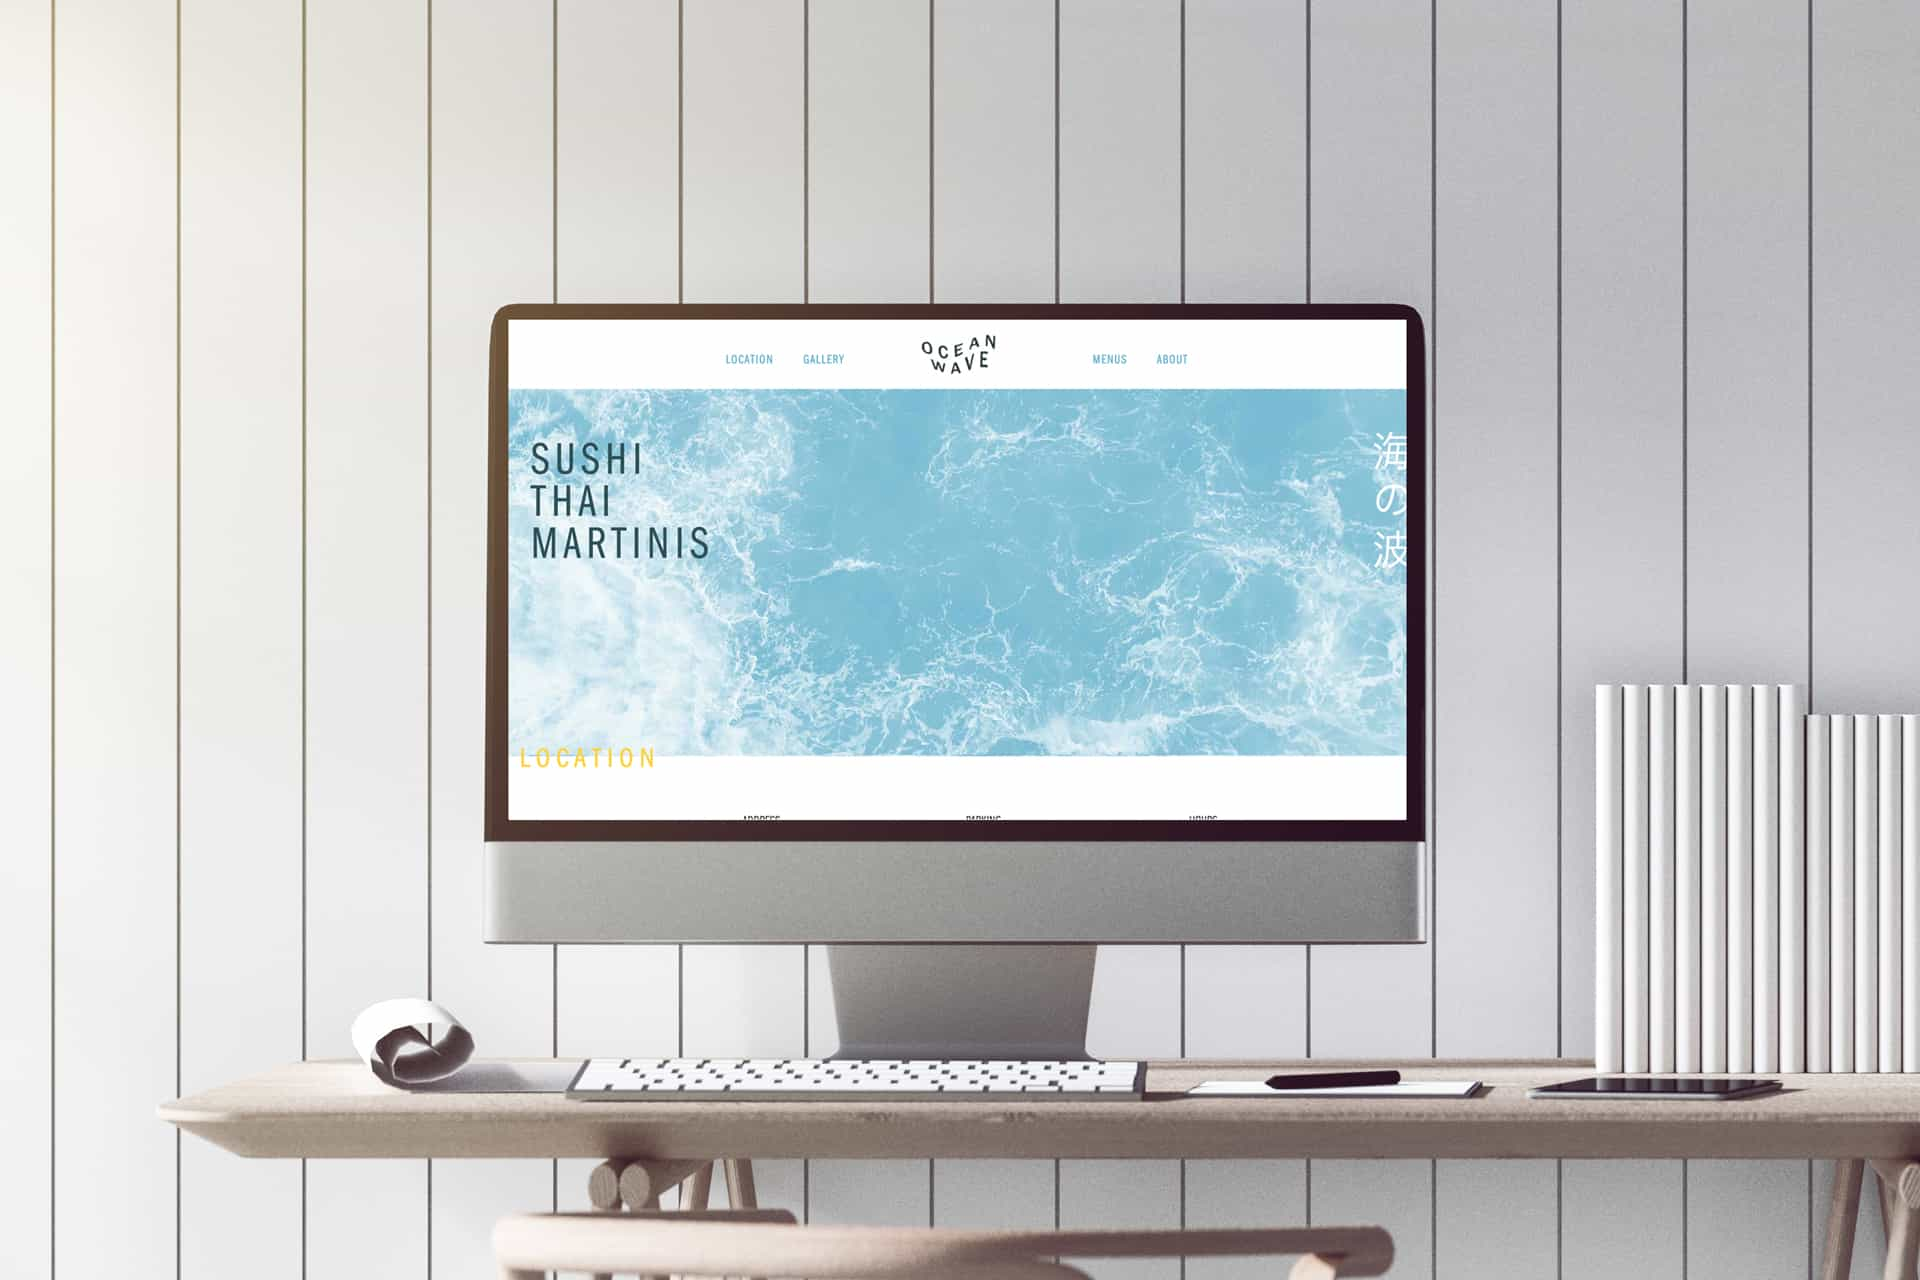 OceanWave thai sushi restaurant branding website design